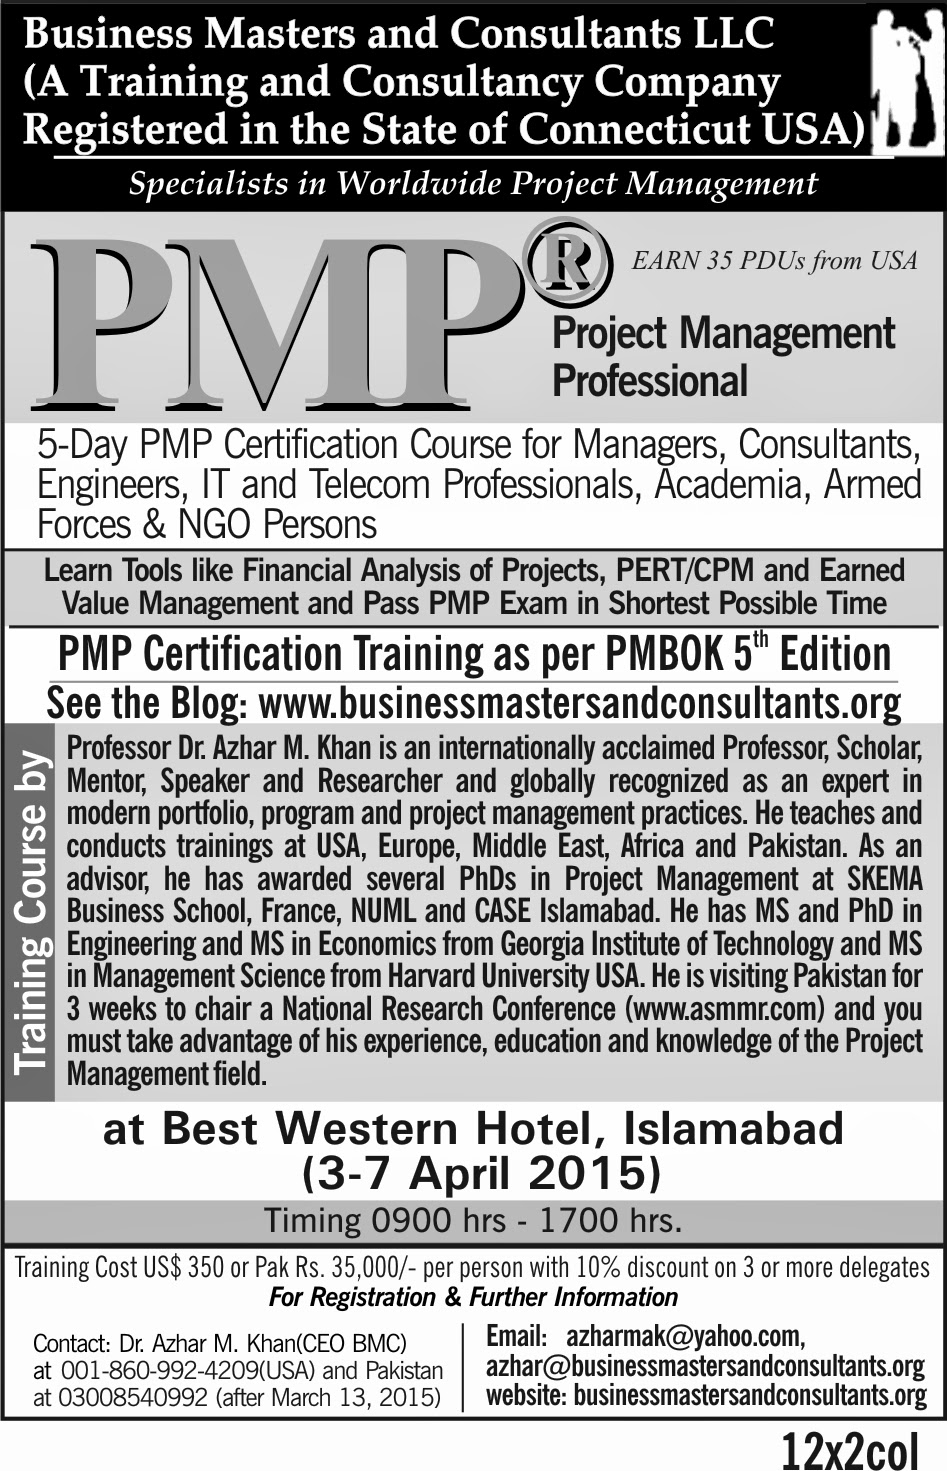 Institute of project management and emotional intelligence pmp pmp training at islamabad pakistan 3 7 april 2015 xflitez Image collections